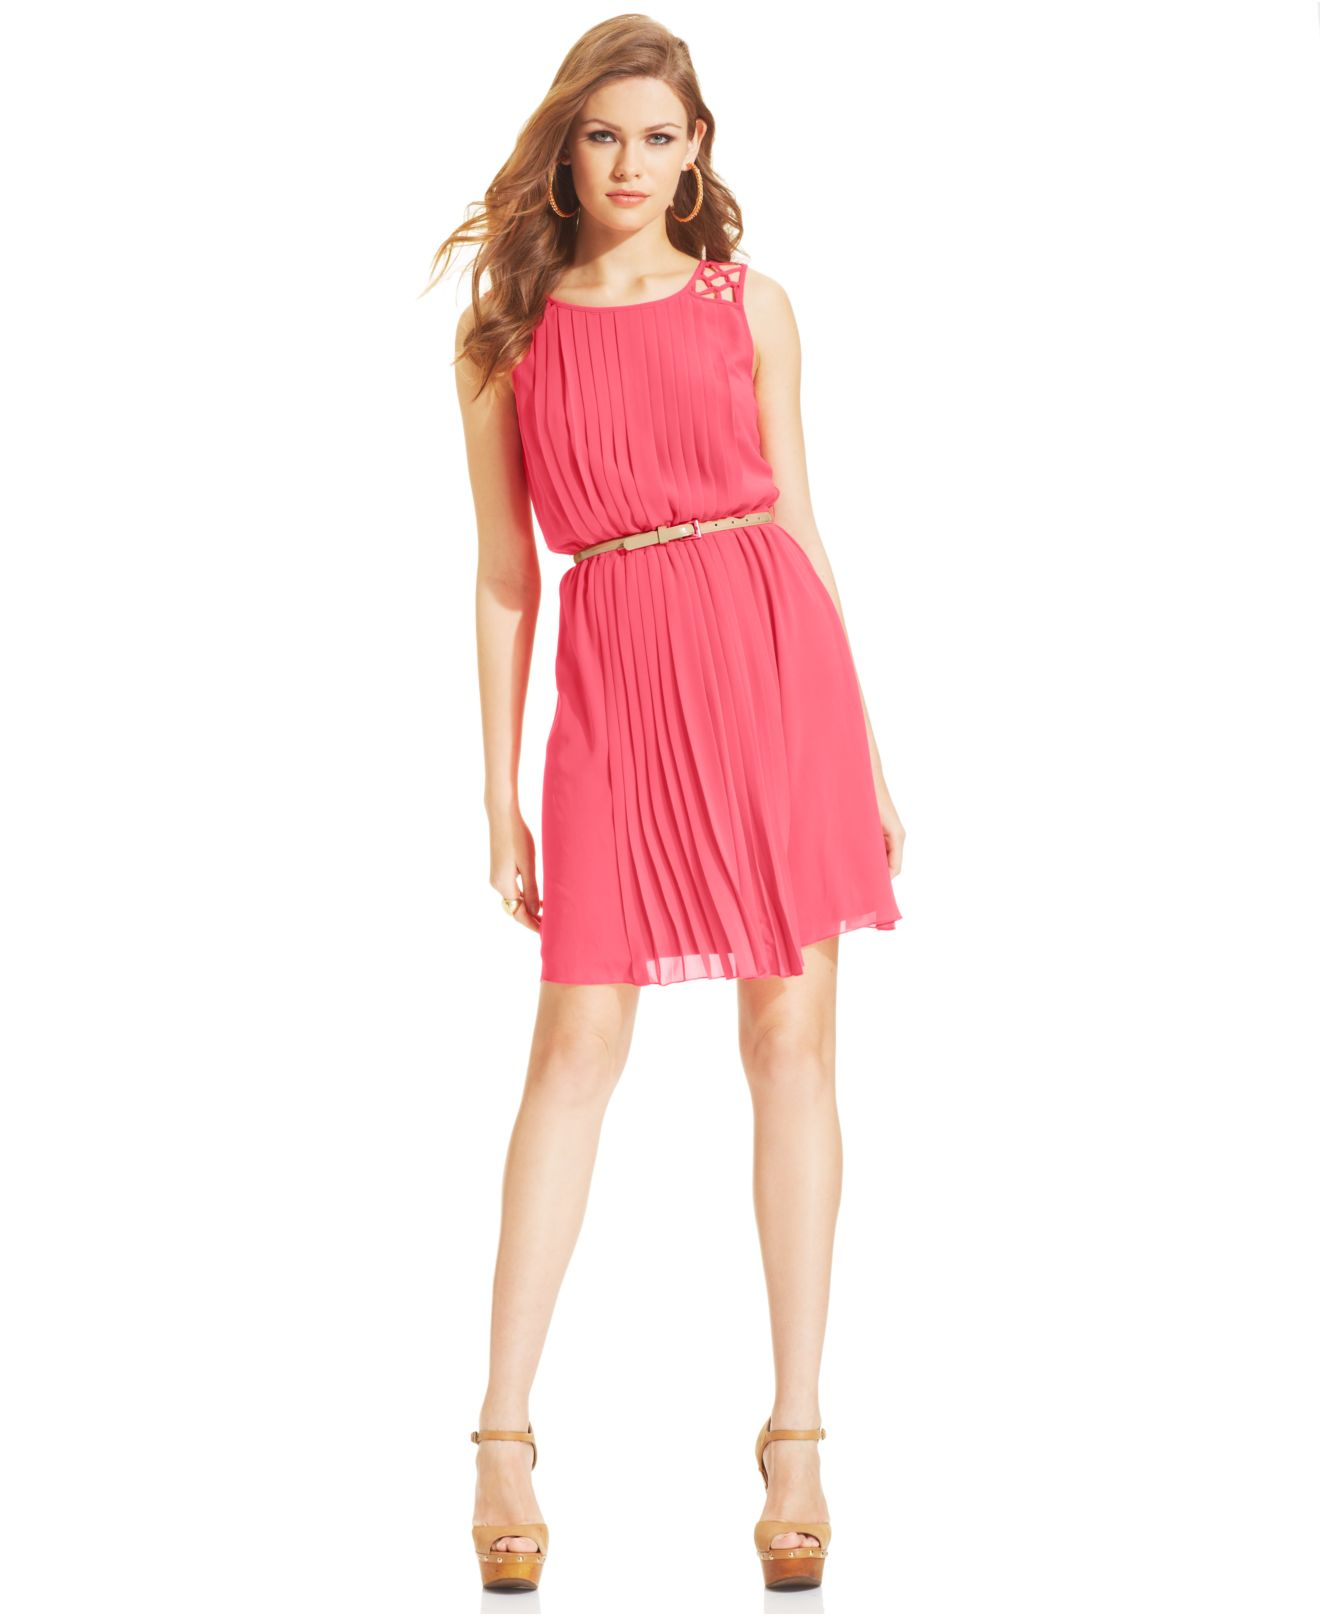 Jessica Simpson Sleeveless Belted Pleated Dress In Pink